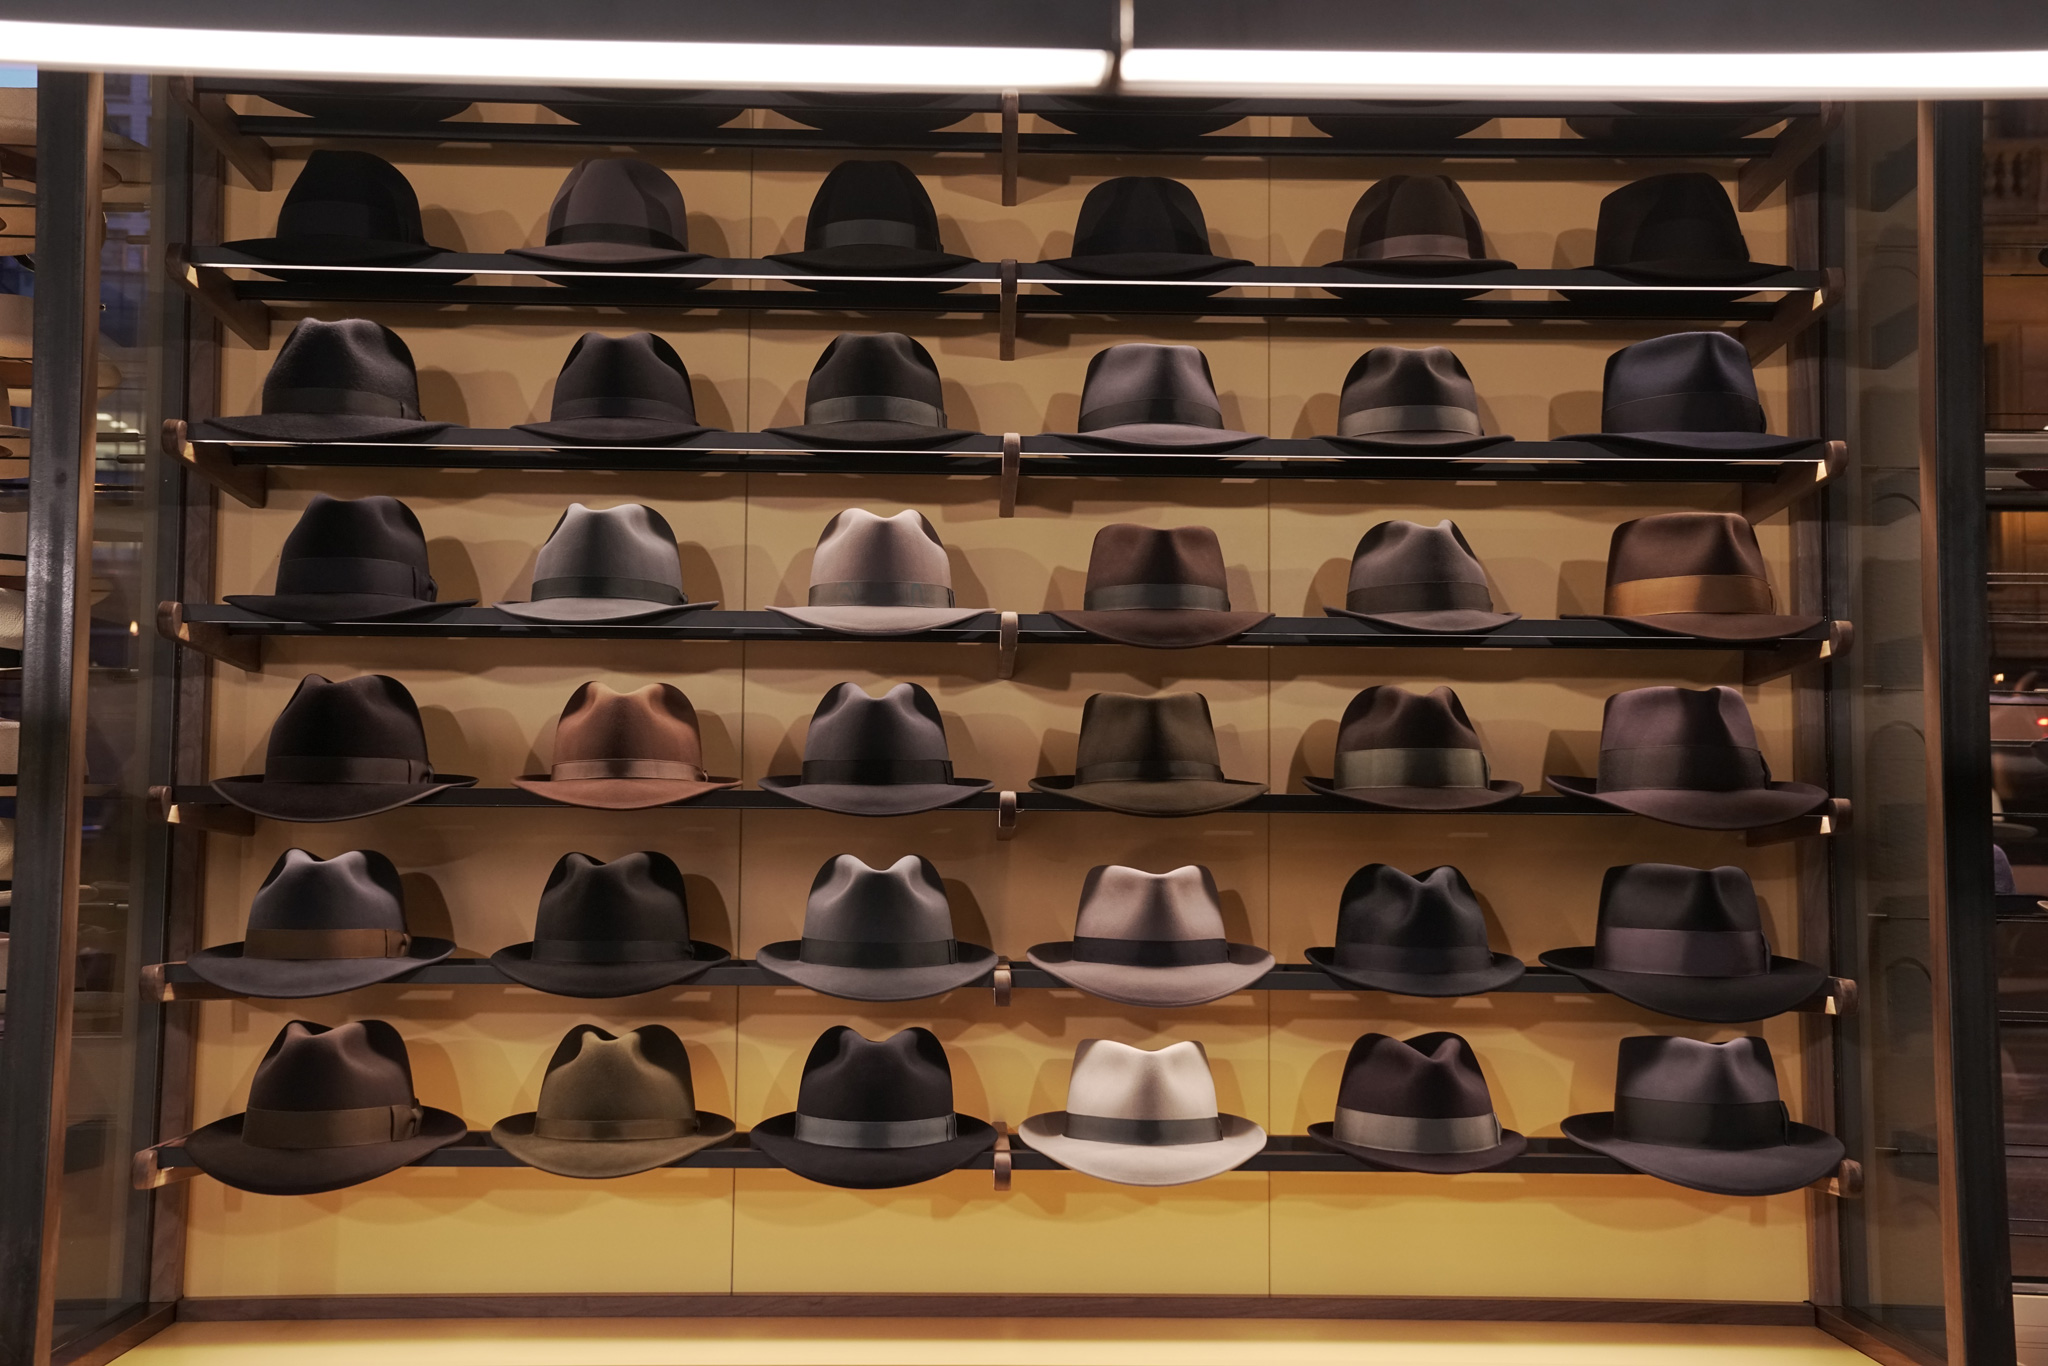 894838dd535 Hats arrayed on shelves at Optimo Hats